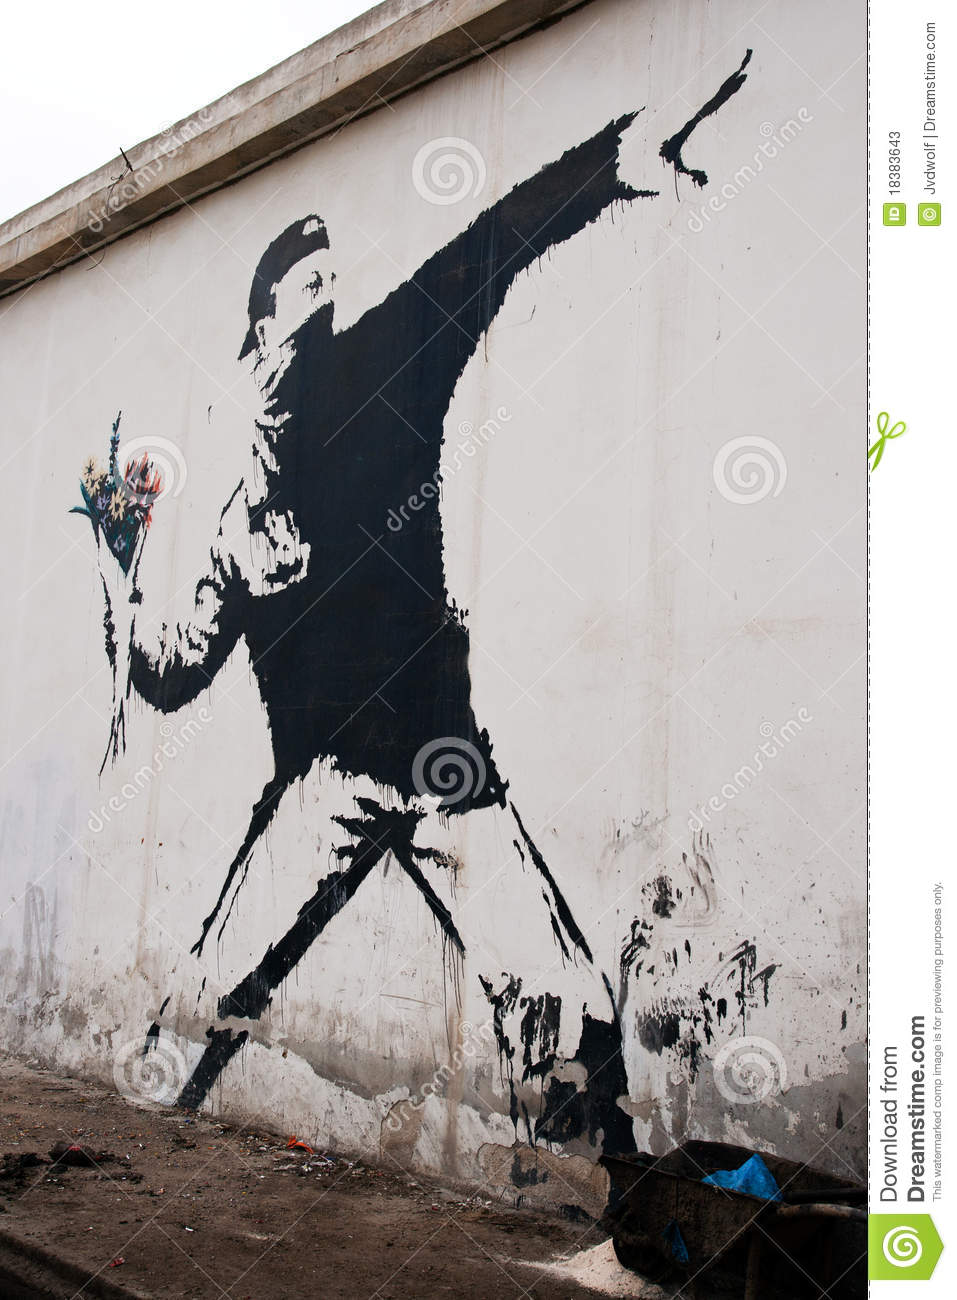 Banksy In Palestine Editorial Stock Photo Image Of West